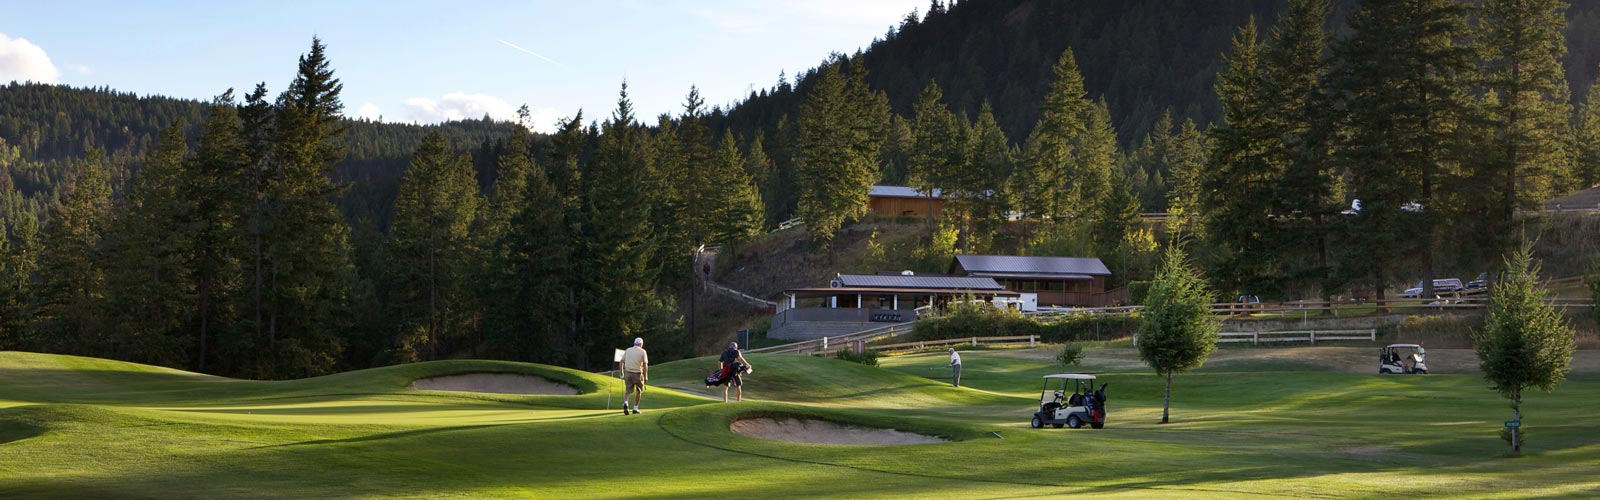 Chinook Cove Golf Course hole with sand traps